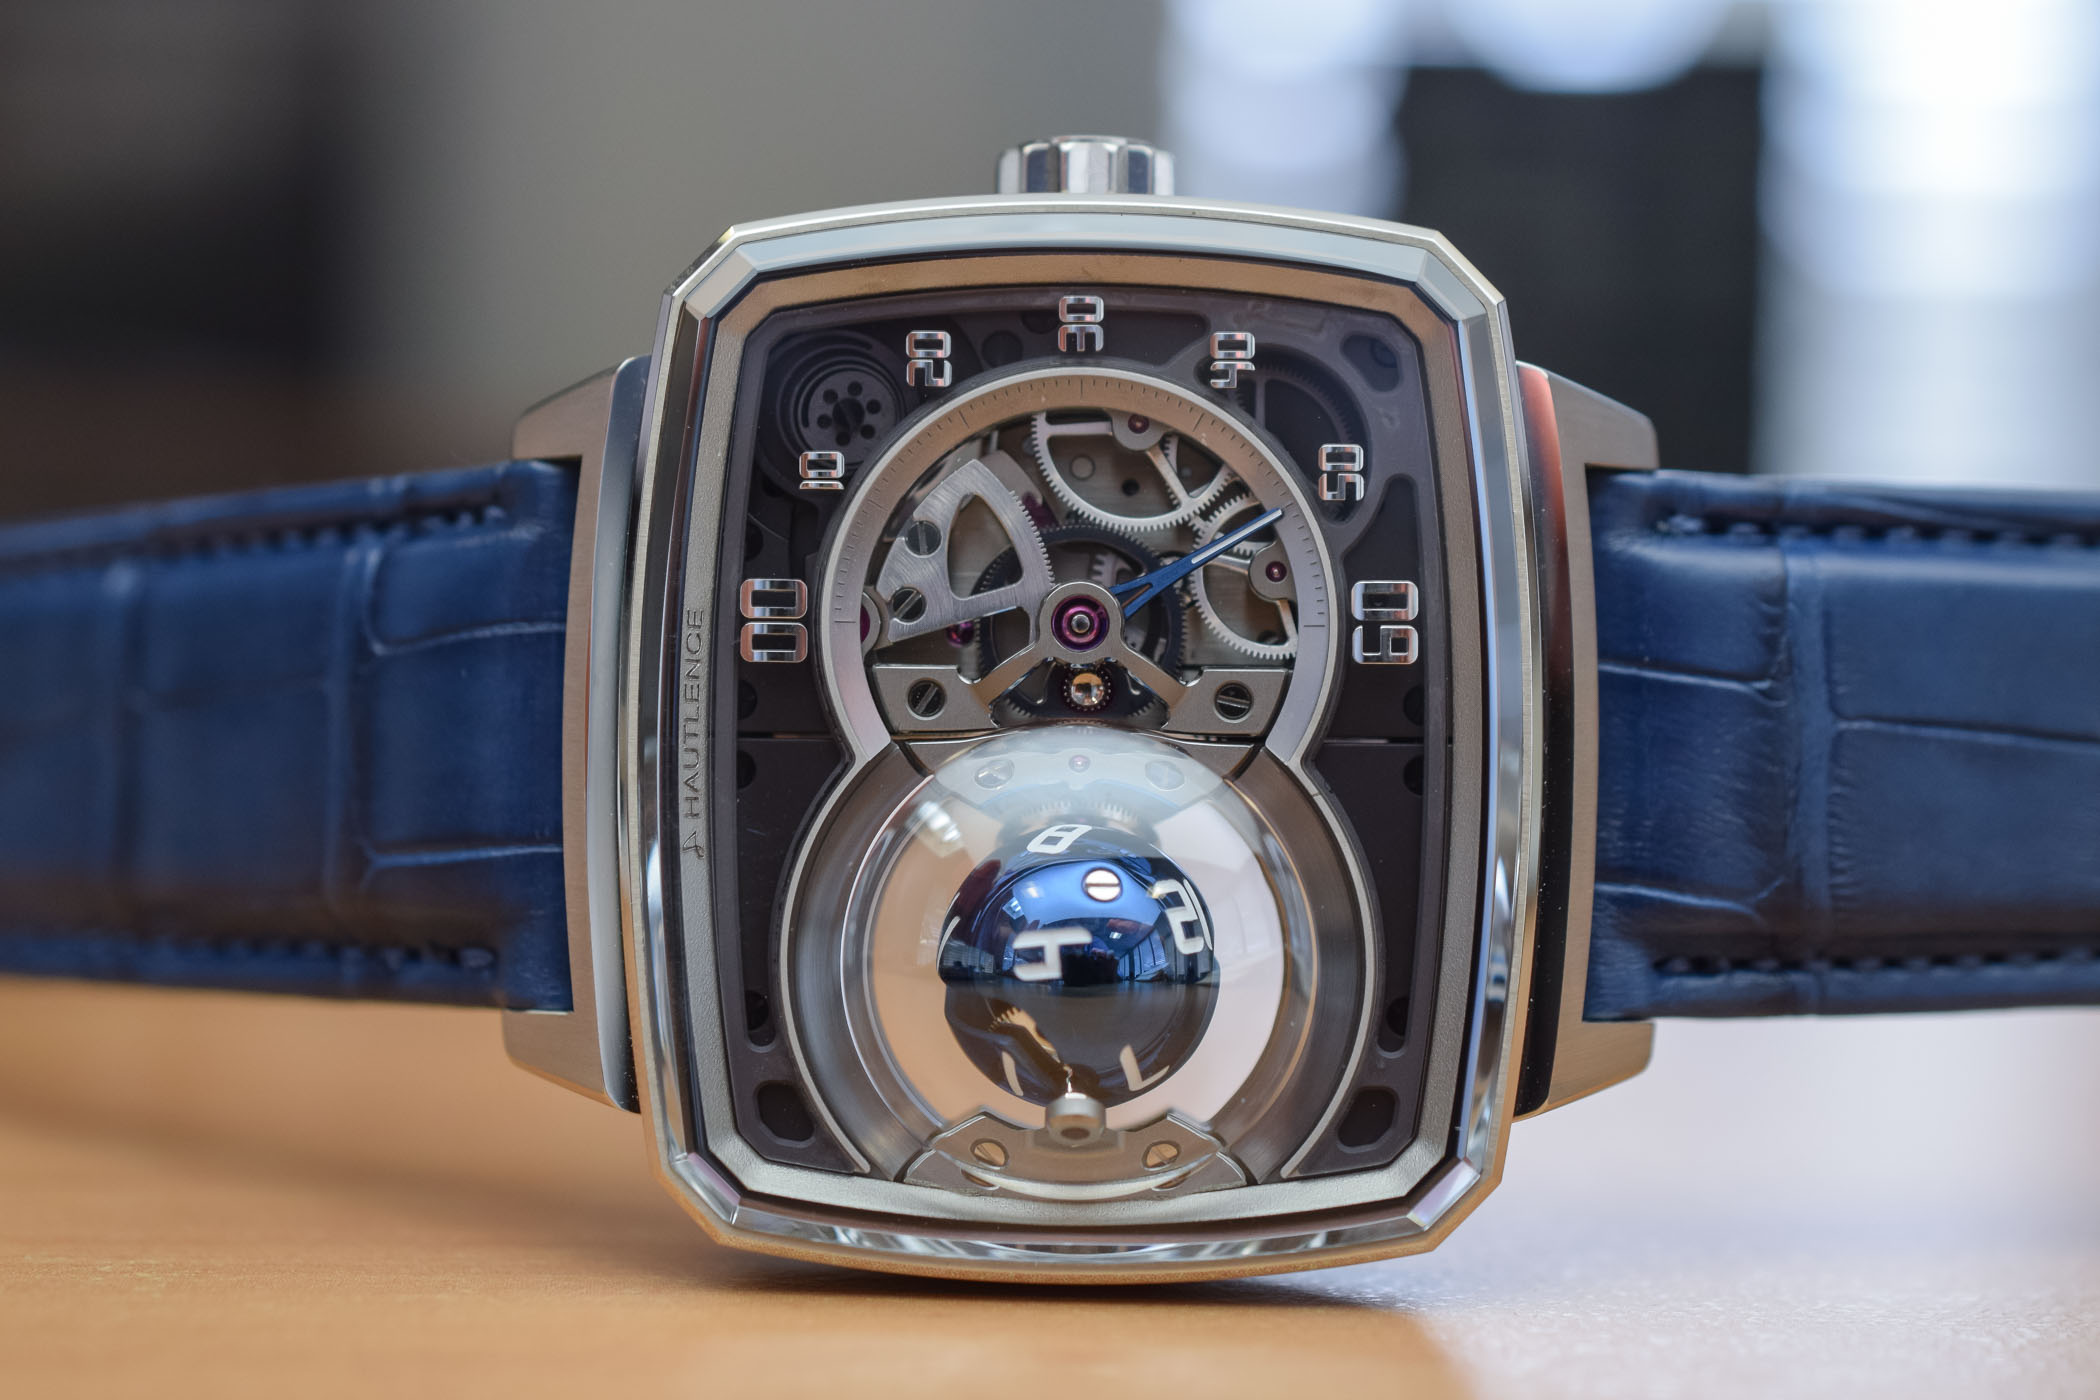 Hautlence HL Sphere 01 - Spherical Hours Display - Baselworld 2019 - 5